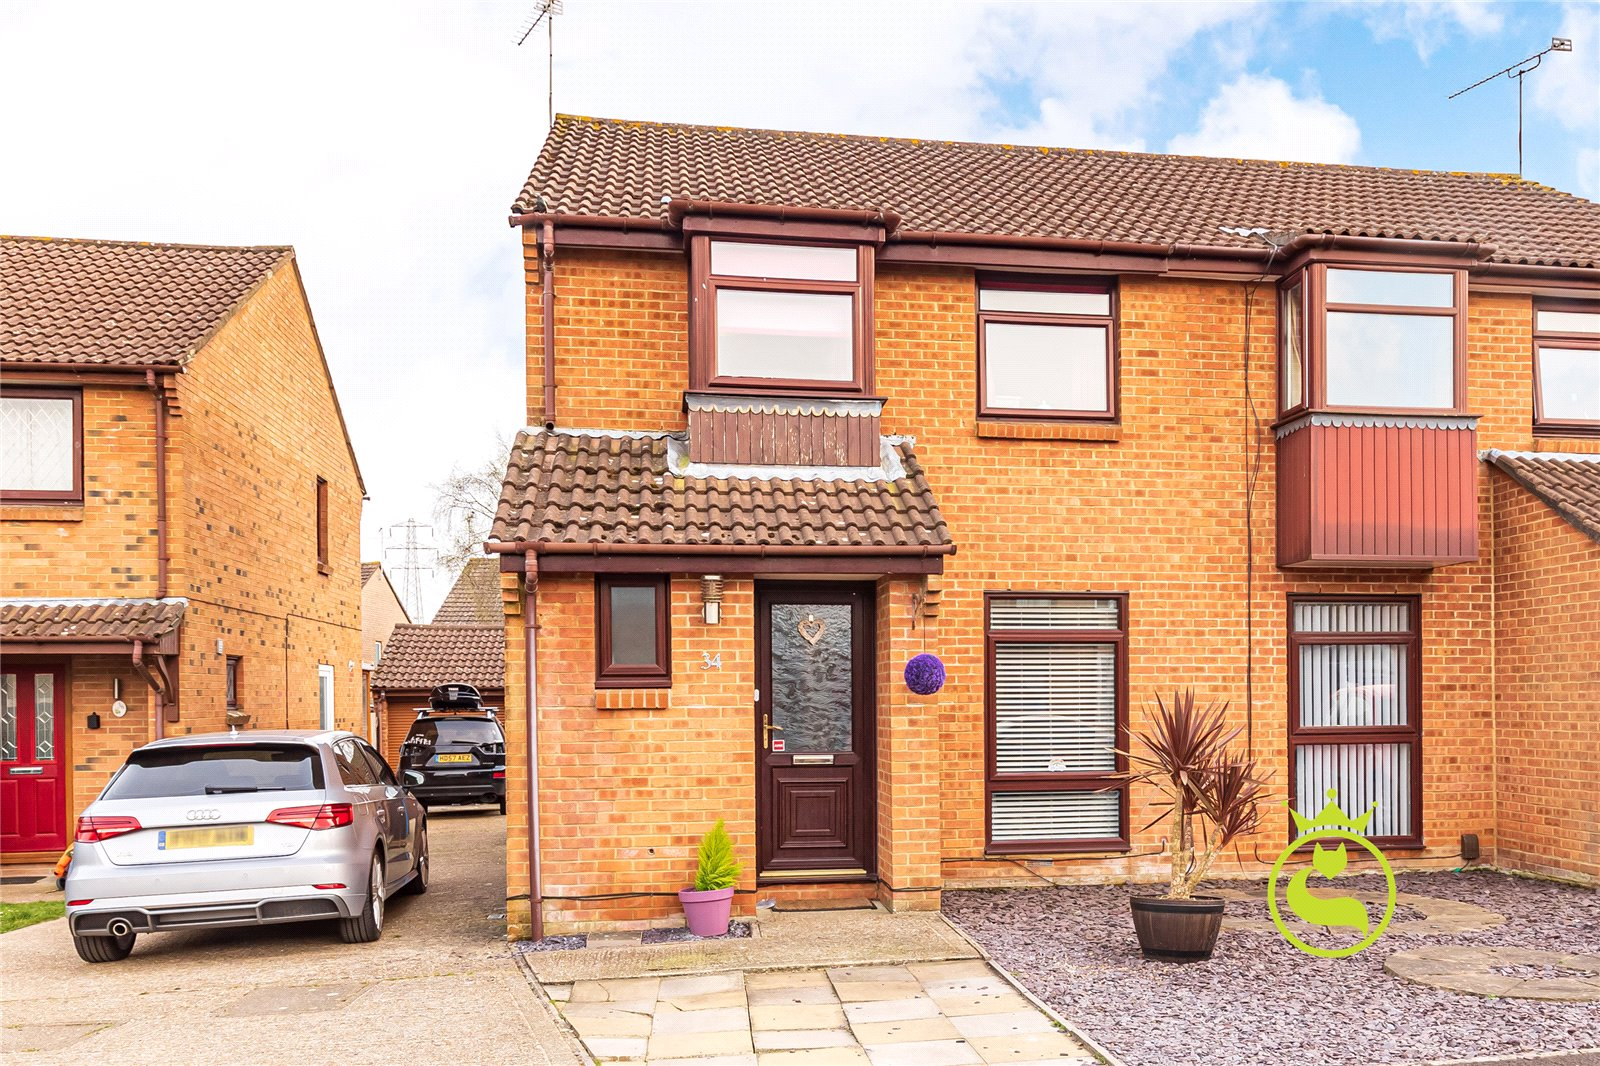 3 bed house for sale in Tollard Close, Parkstone, BH12